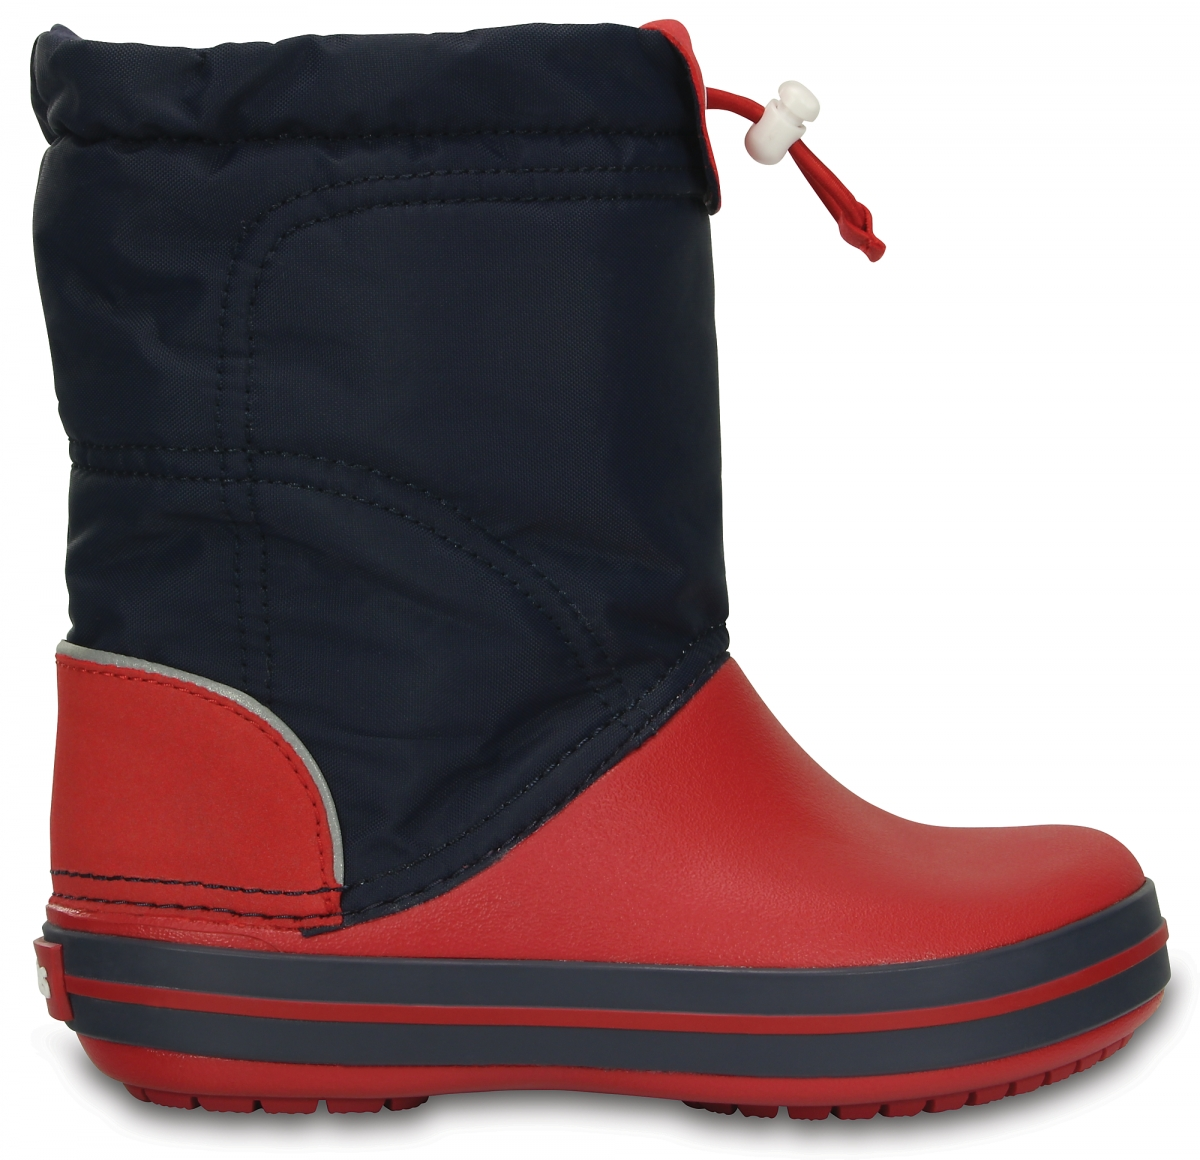 Crocs Crocband LodgePoint Boot Kids Navy/Red, C10 (27-28)